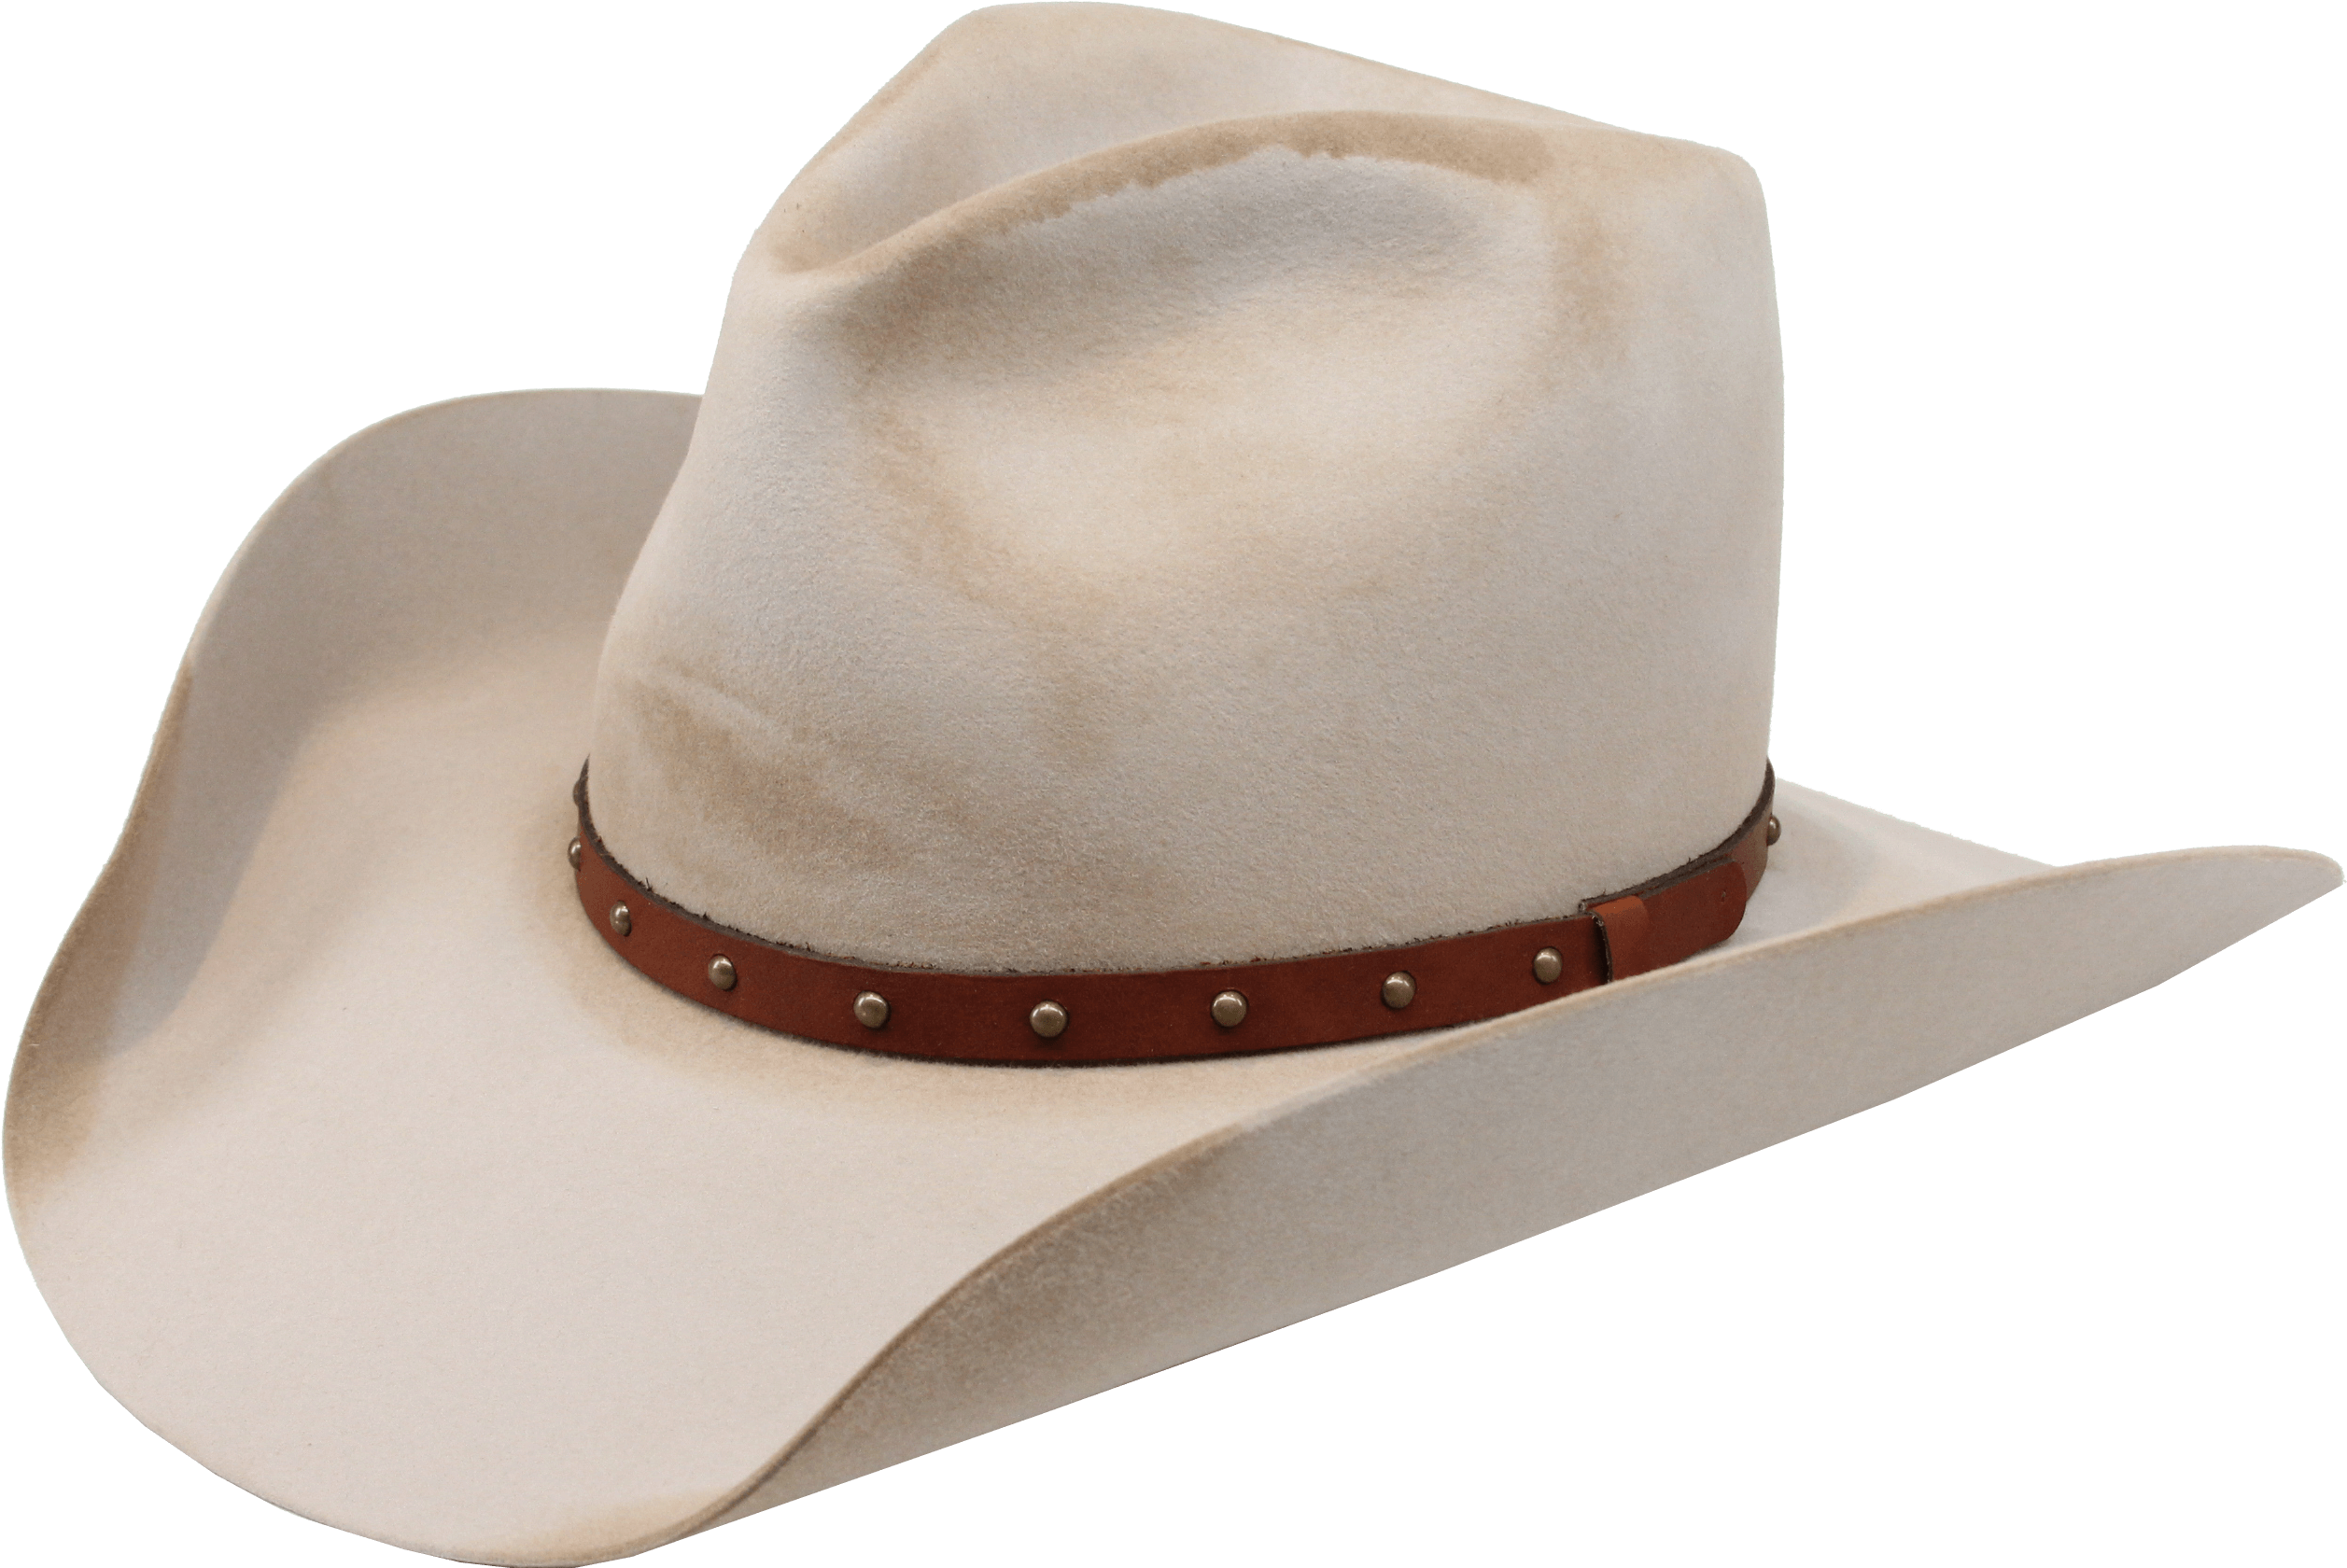 Download Cowboy Hat Png Image With Transparent Background Greeley Hat Works Ranch Worn Light Pinch Front Hat Png Image With No Background Pngkey Com Cowboy hats after their discovery. download cowboy hat png image with